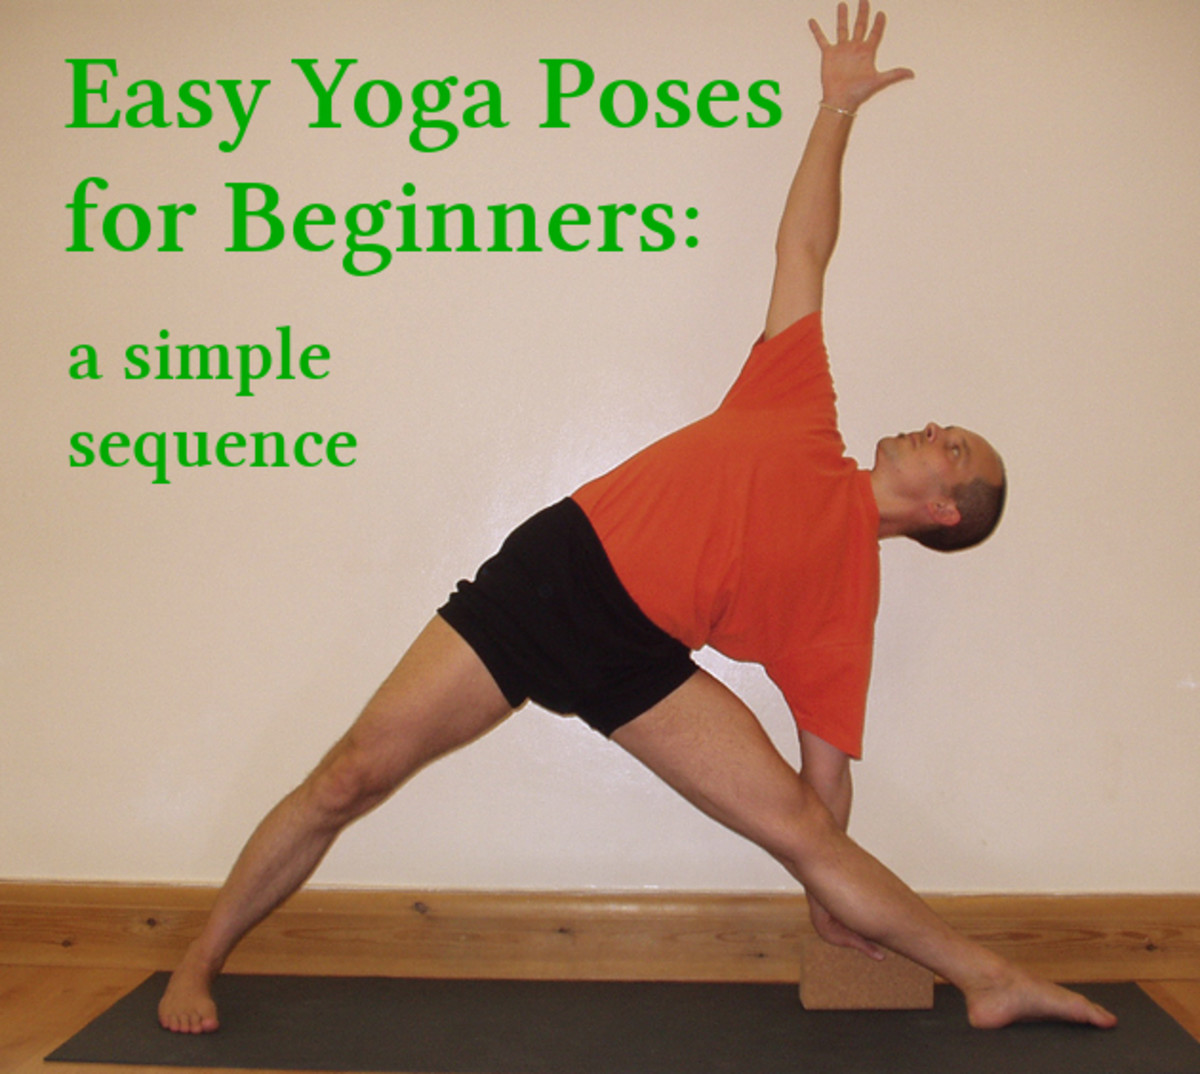 Easy Yoga Poses for Beginners: Basic Yoga Poses for Home Practice